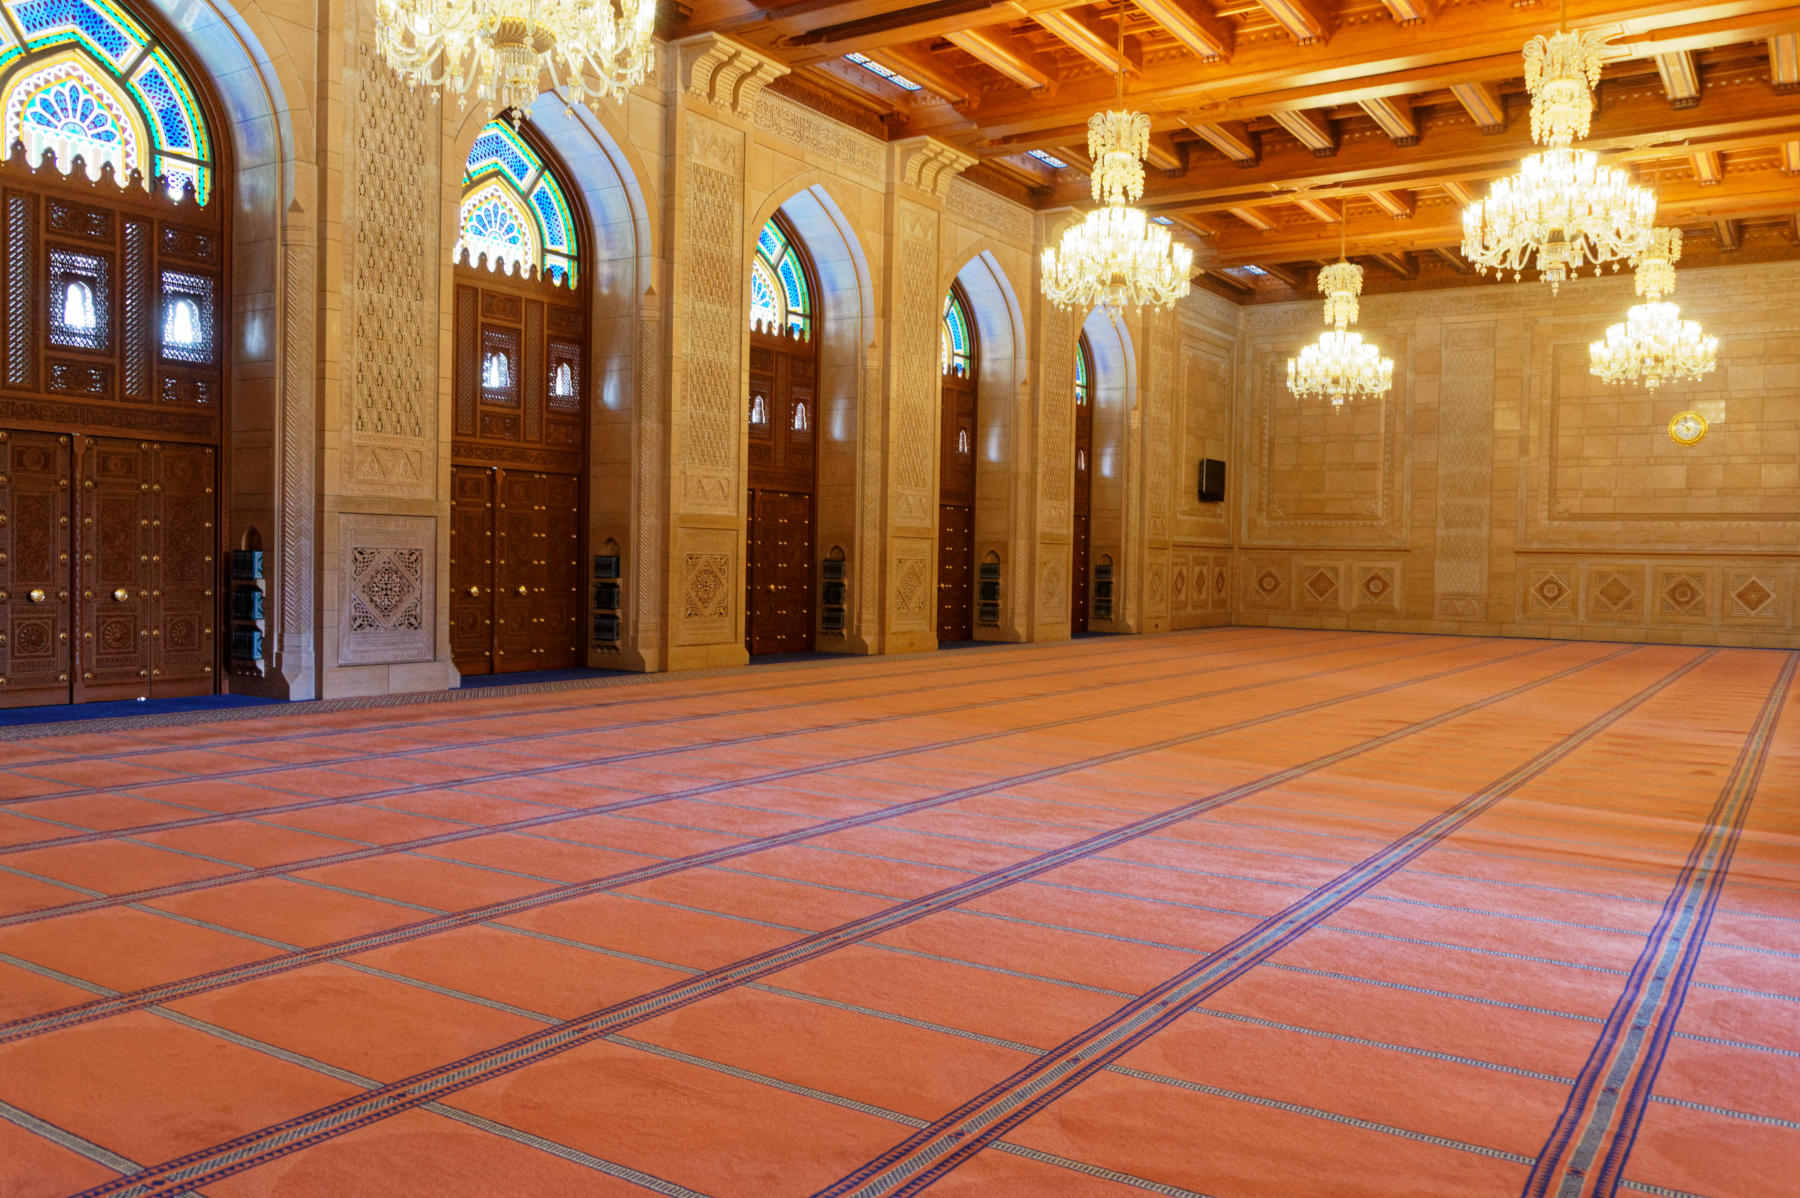 Women's Prayer Hall